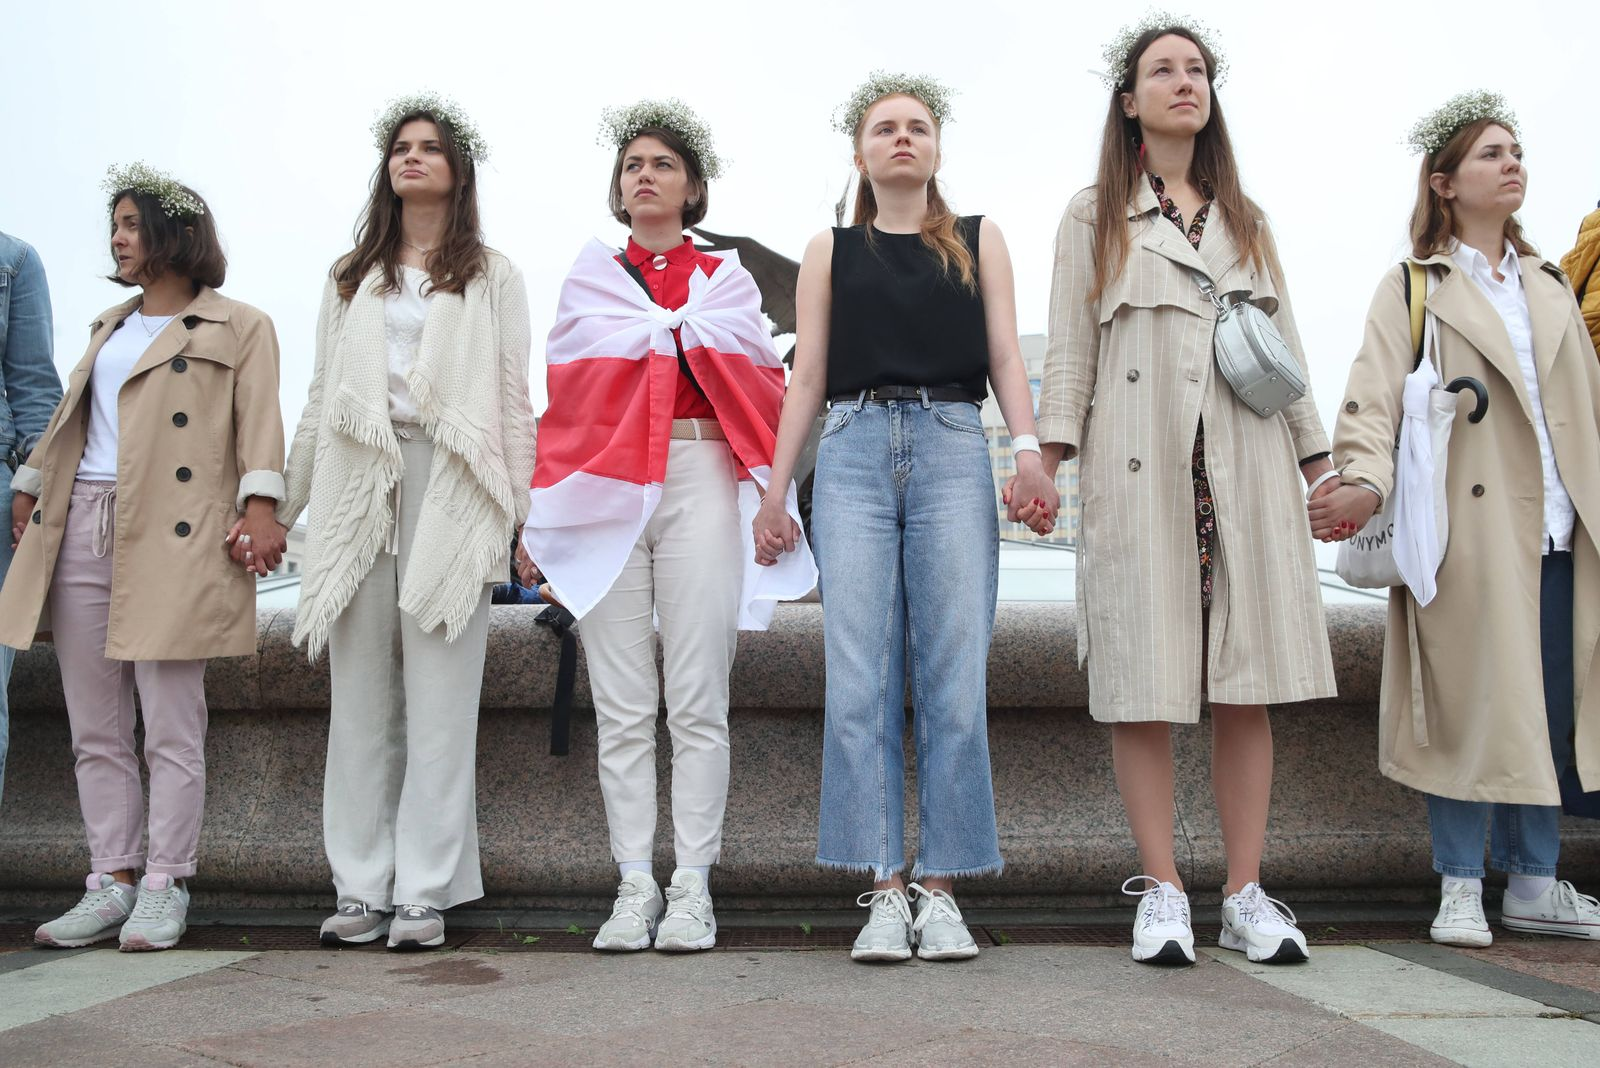 MINSK, BELARUS - AUGUST 23, 2020: Women form a chain of solidarity in Independence Square. Since the announcement of th